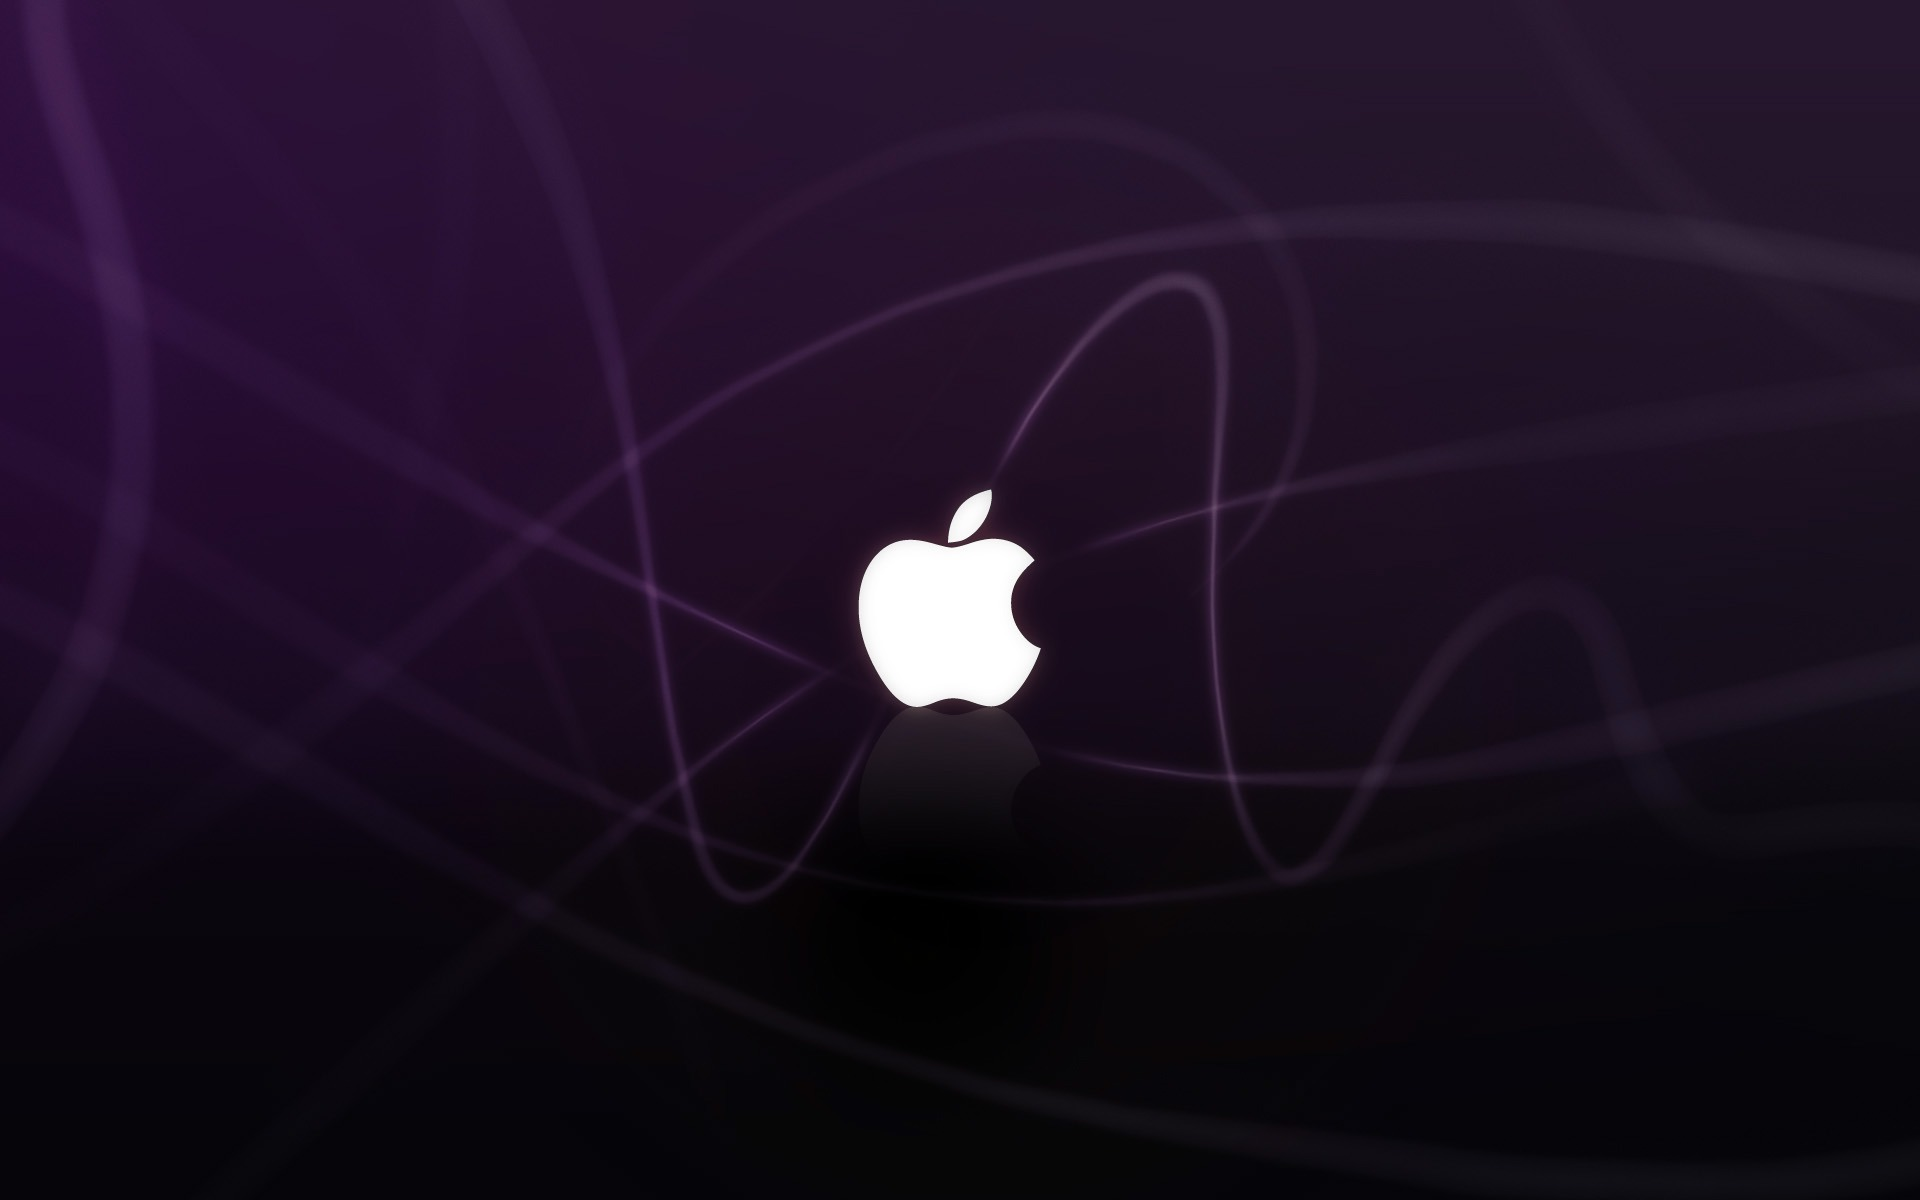 HD Wallpapers Of Apple Logo